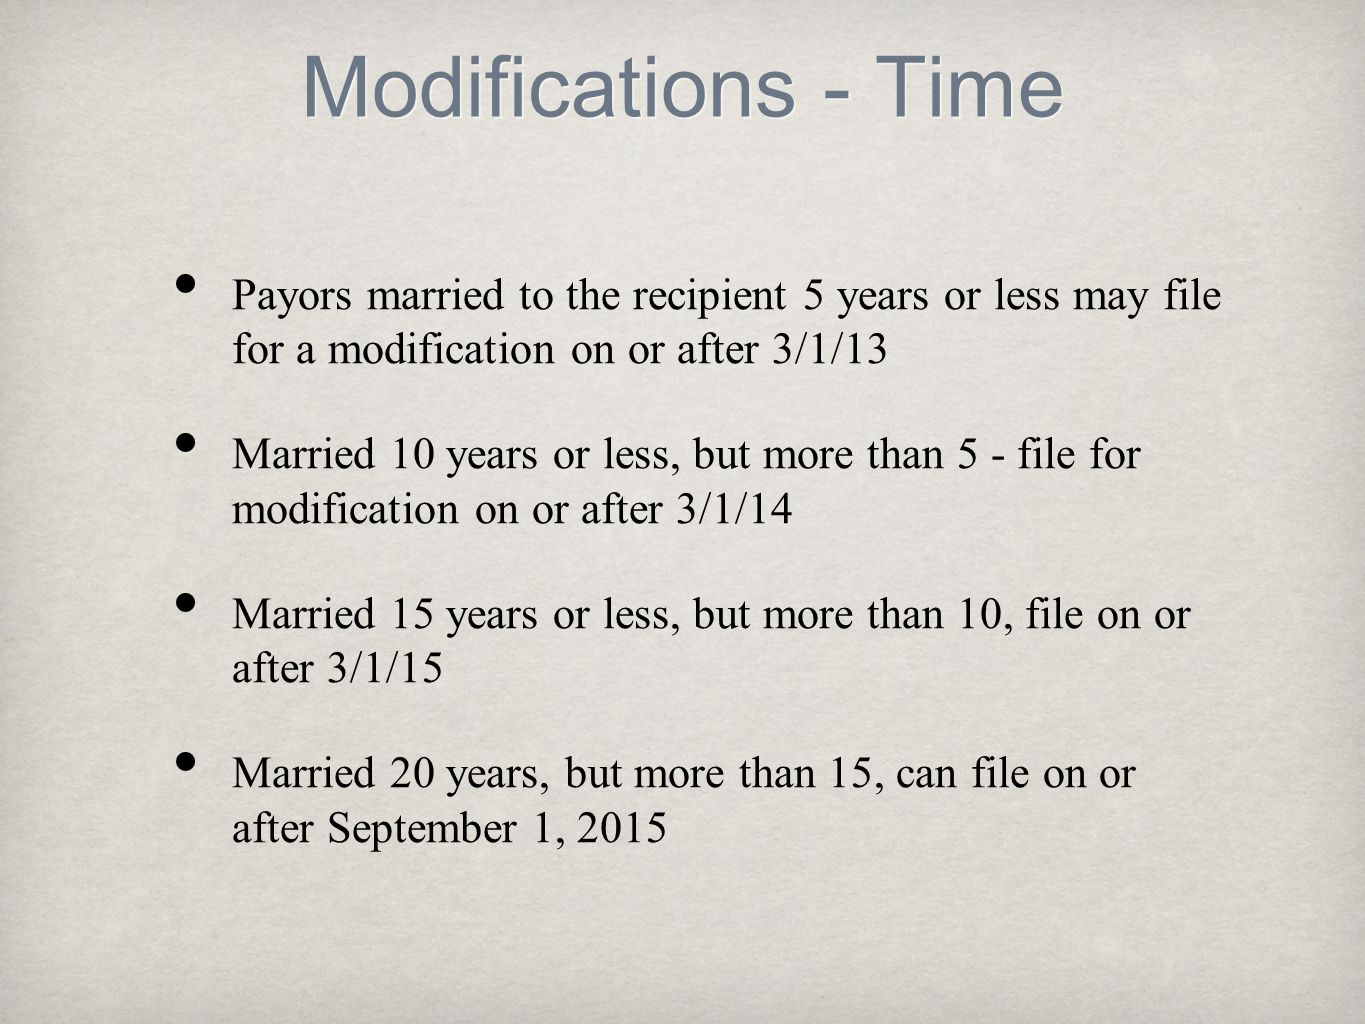 Modifications - Time Payors married to the recipient 5 years or less may file for a modification on or after 3/1/13 Married 10 years or less, but more